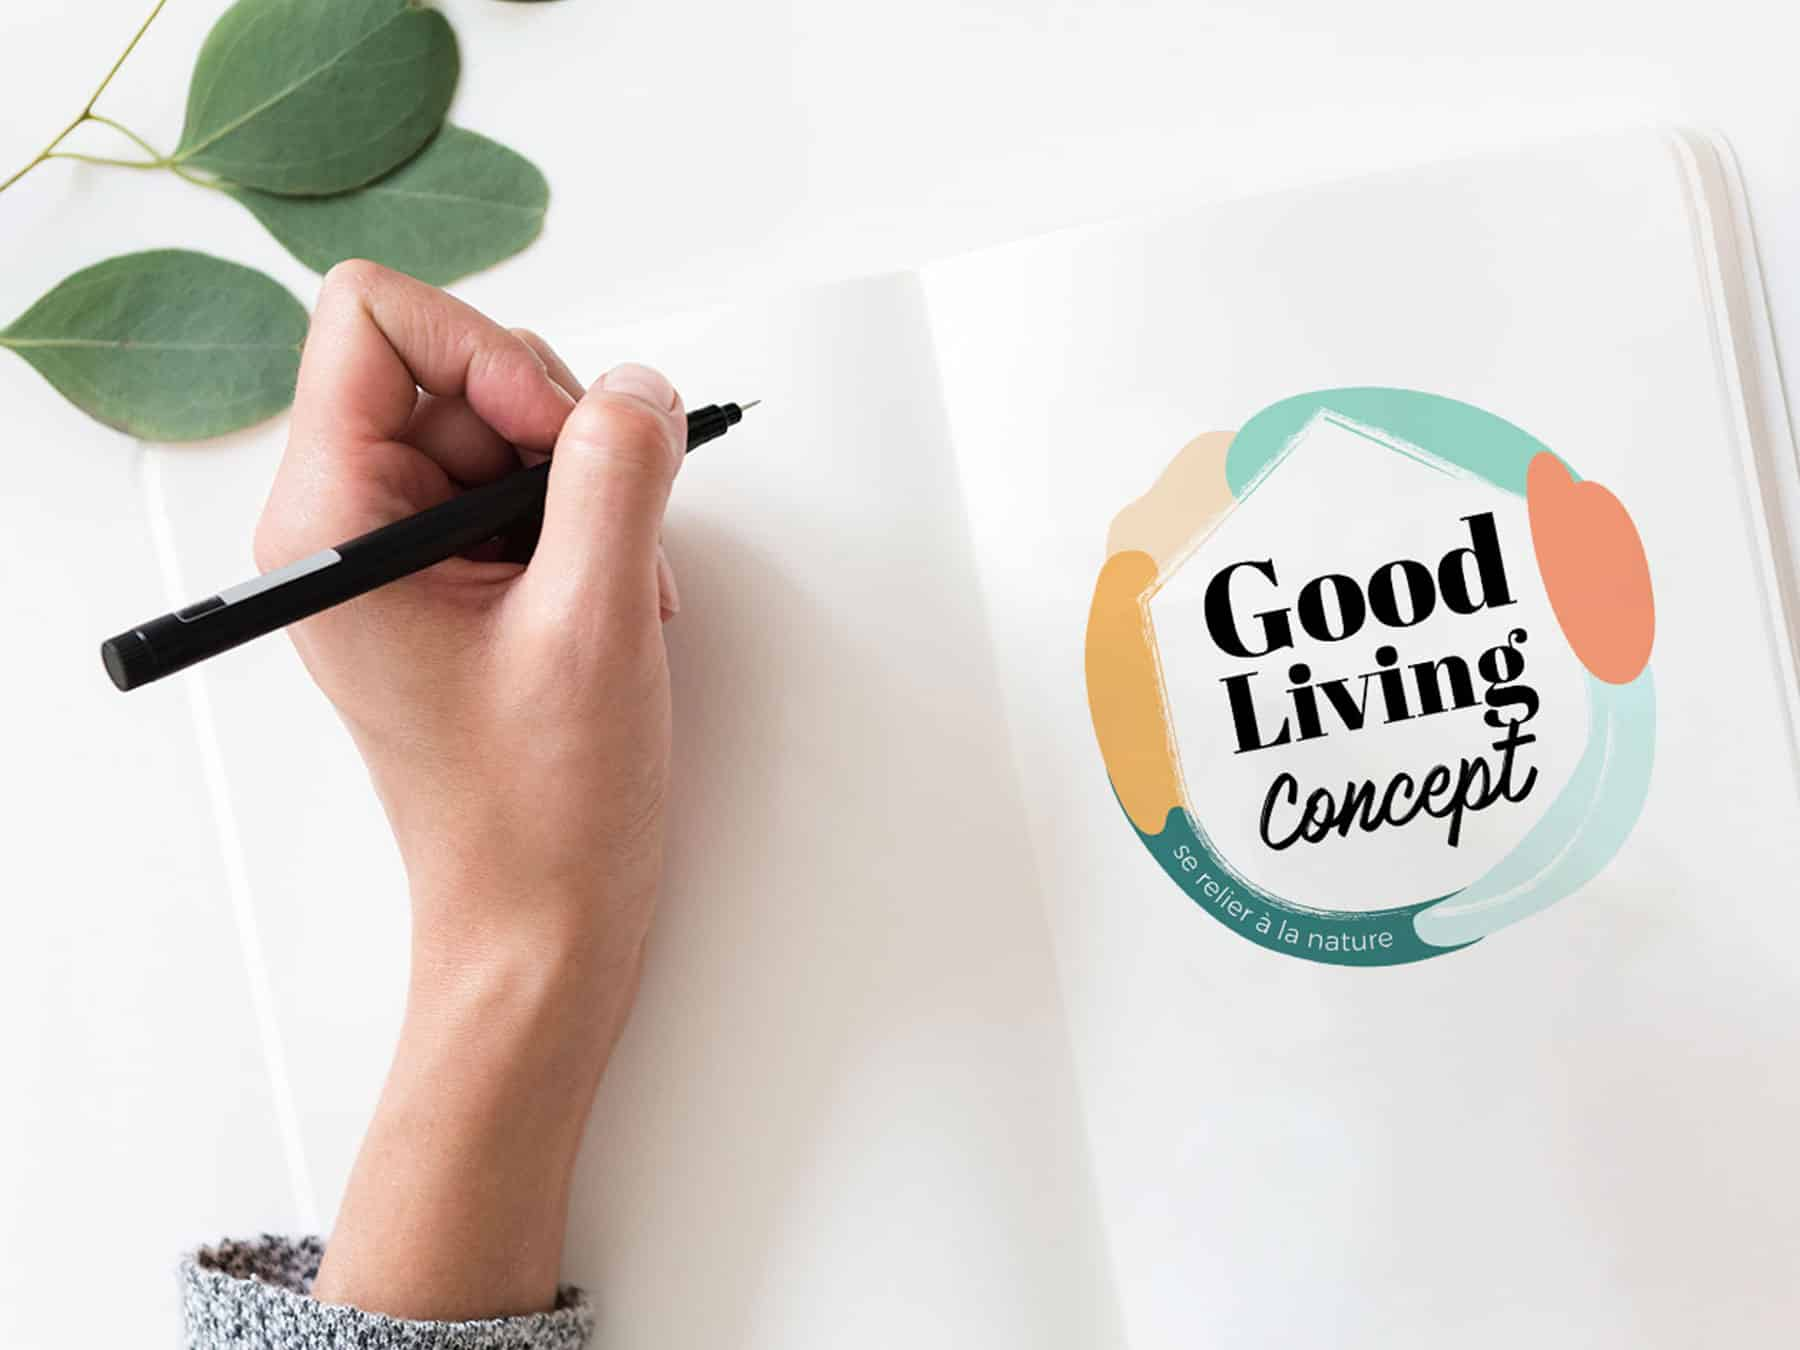 Good Living Concept